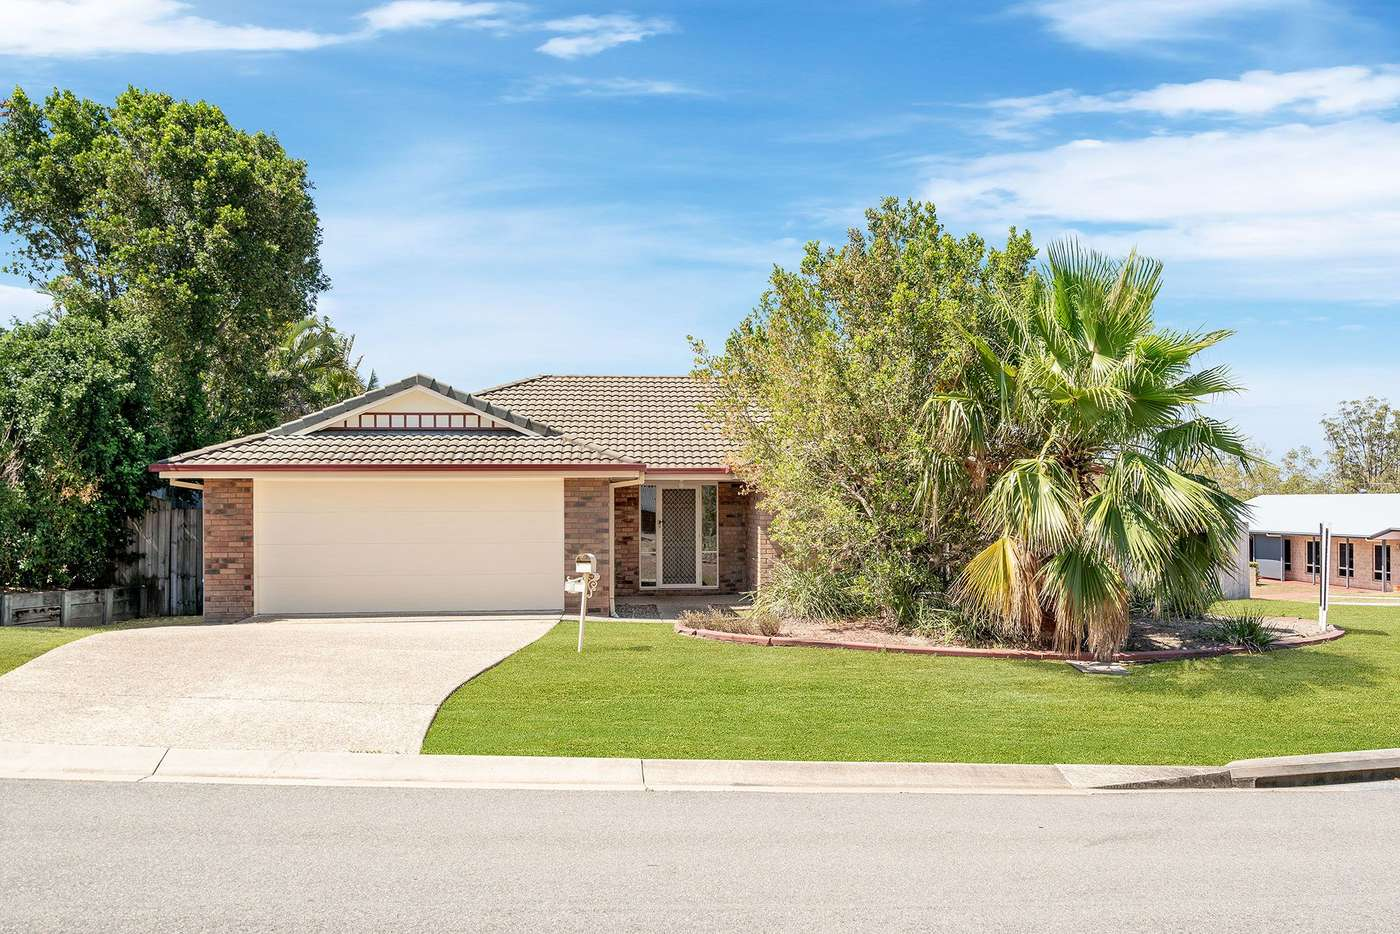 Main view of Homely house listing, 4 Hazelnut Close, Warner QLD 4500